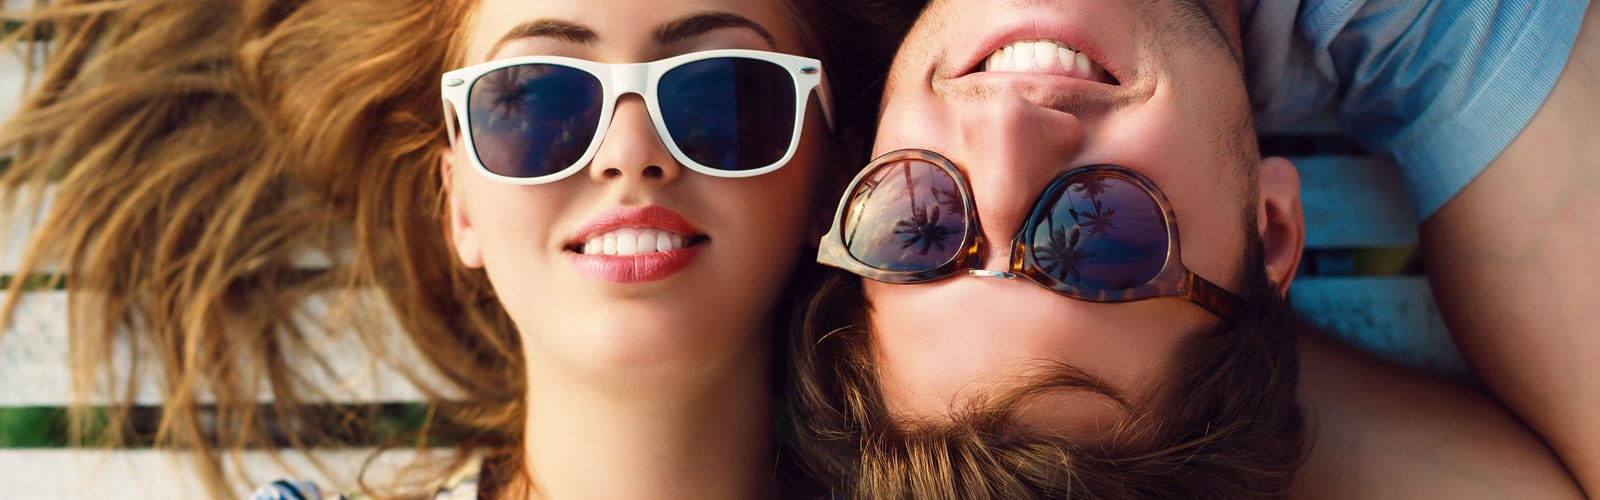 Sunglasses and Faces